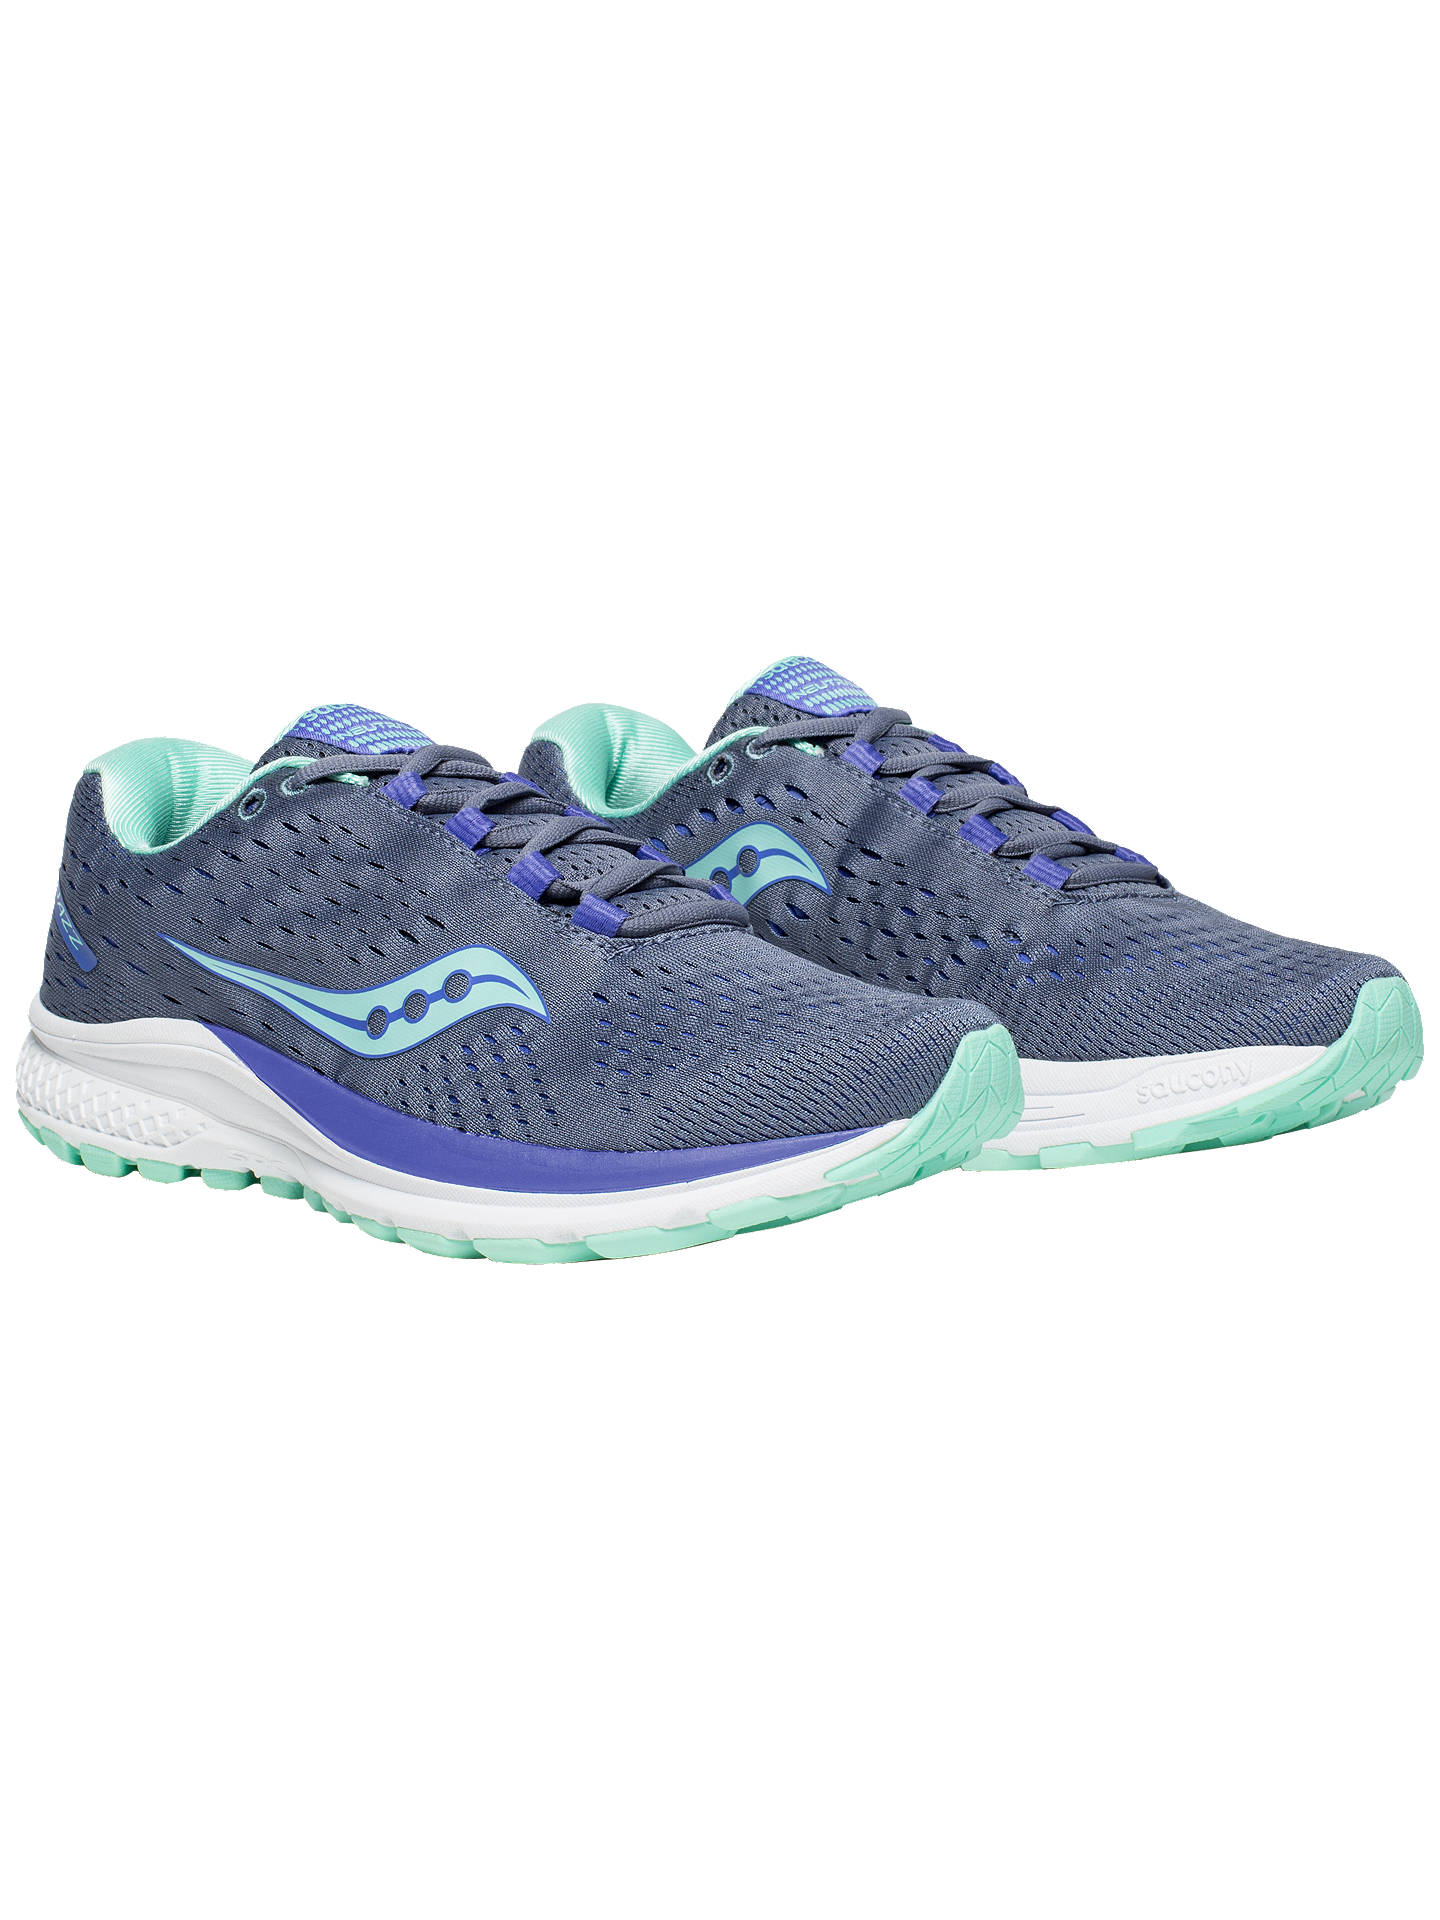 BuySaucony Jazz 20 Women's Running Shoes, Grey/Aqua/Violet, 4 Online at johnlewis.com